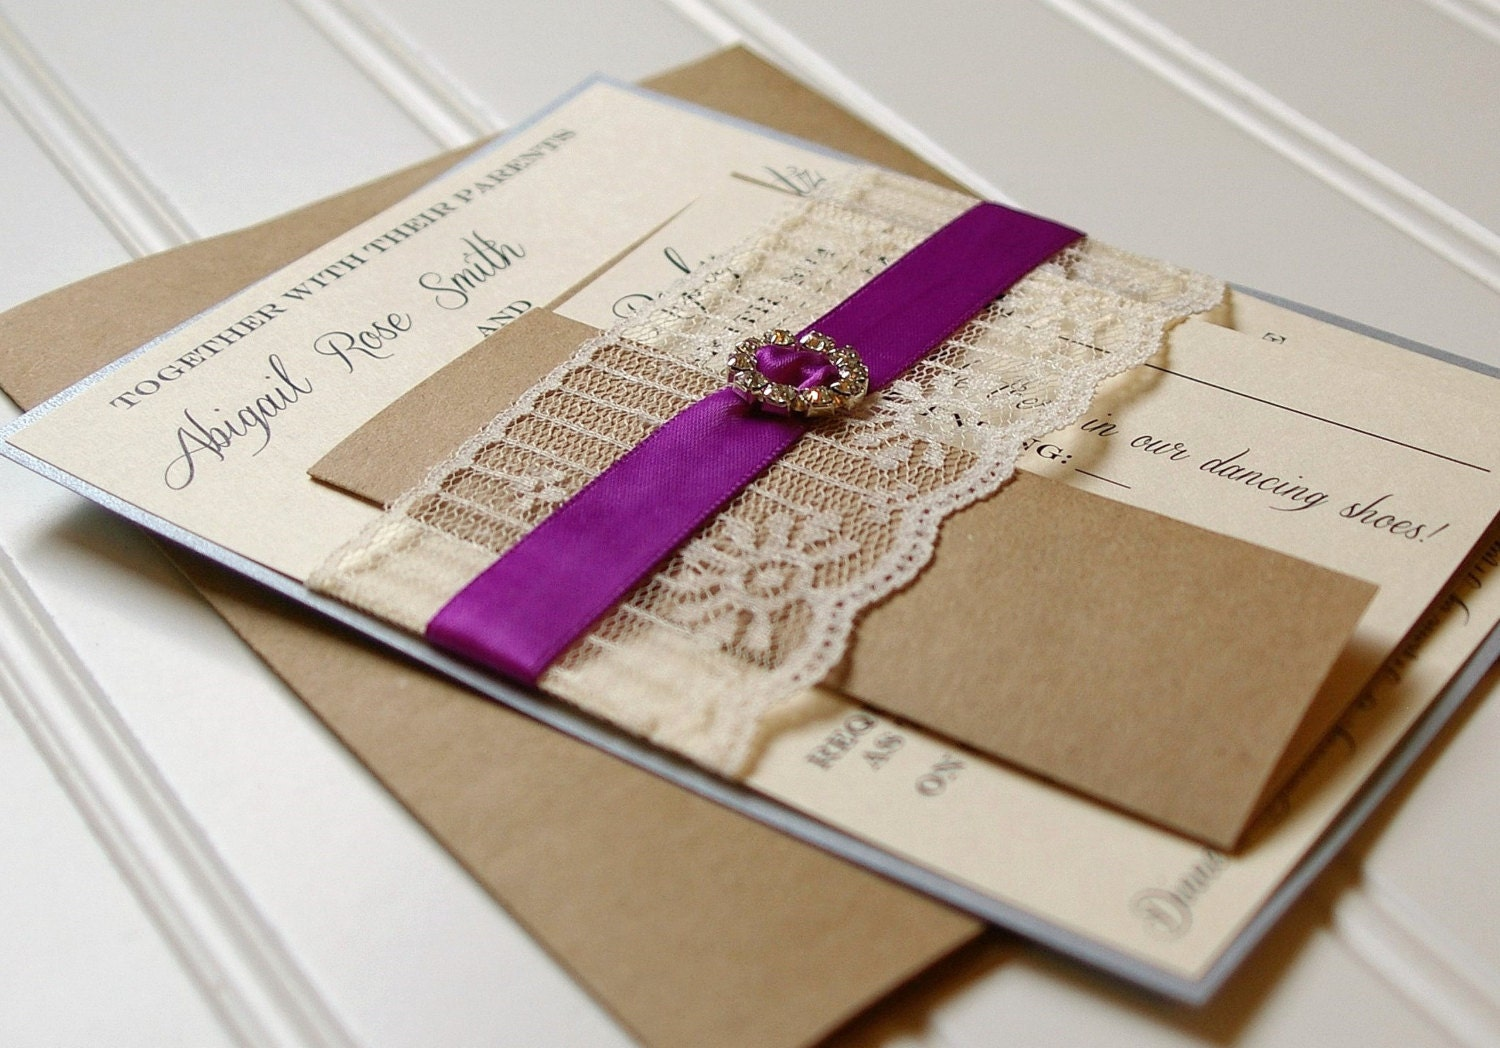 Lace Wedding Invitations: Unique Handmade Lace Ribbon and